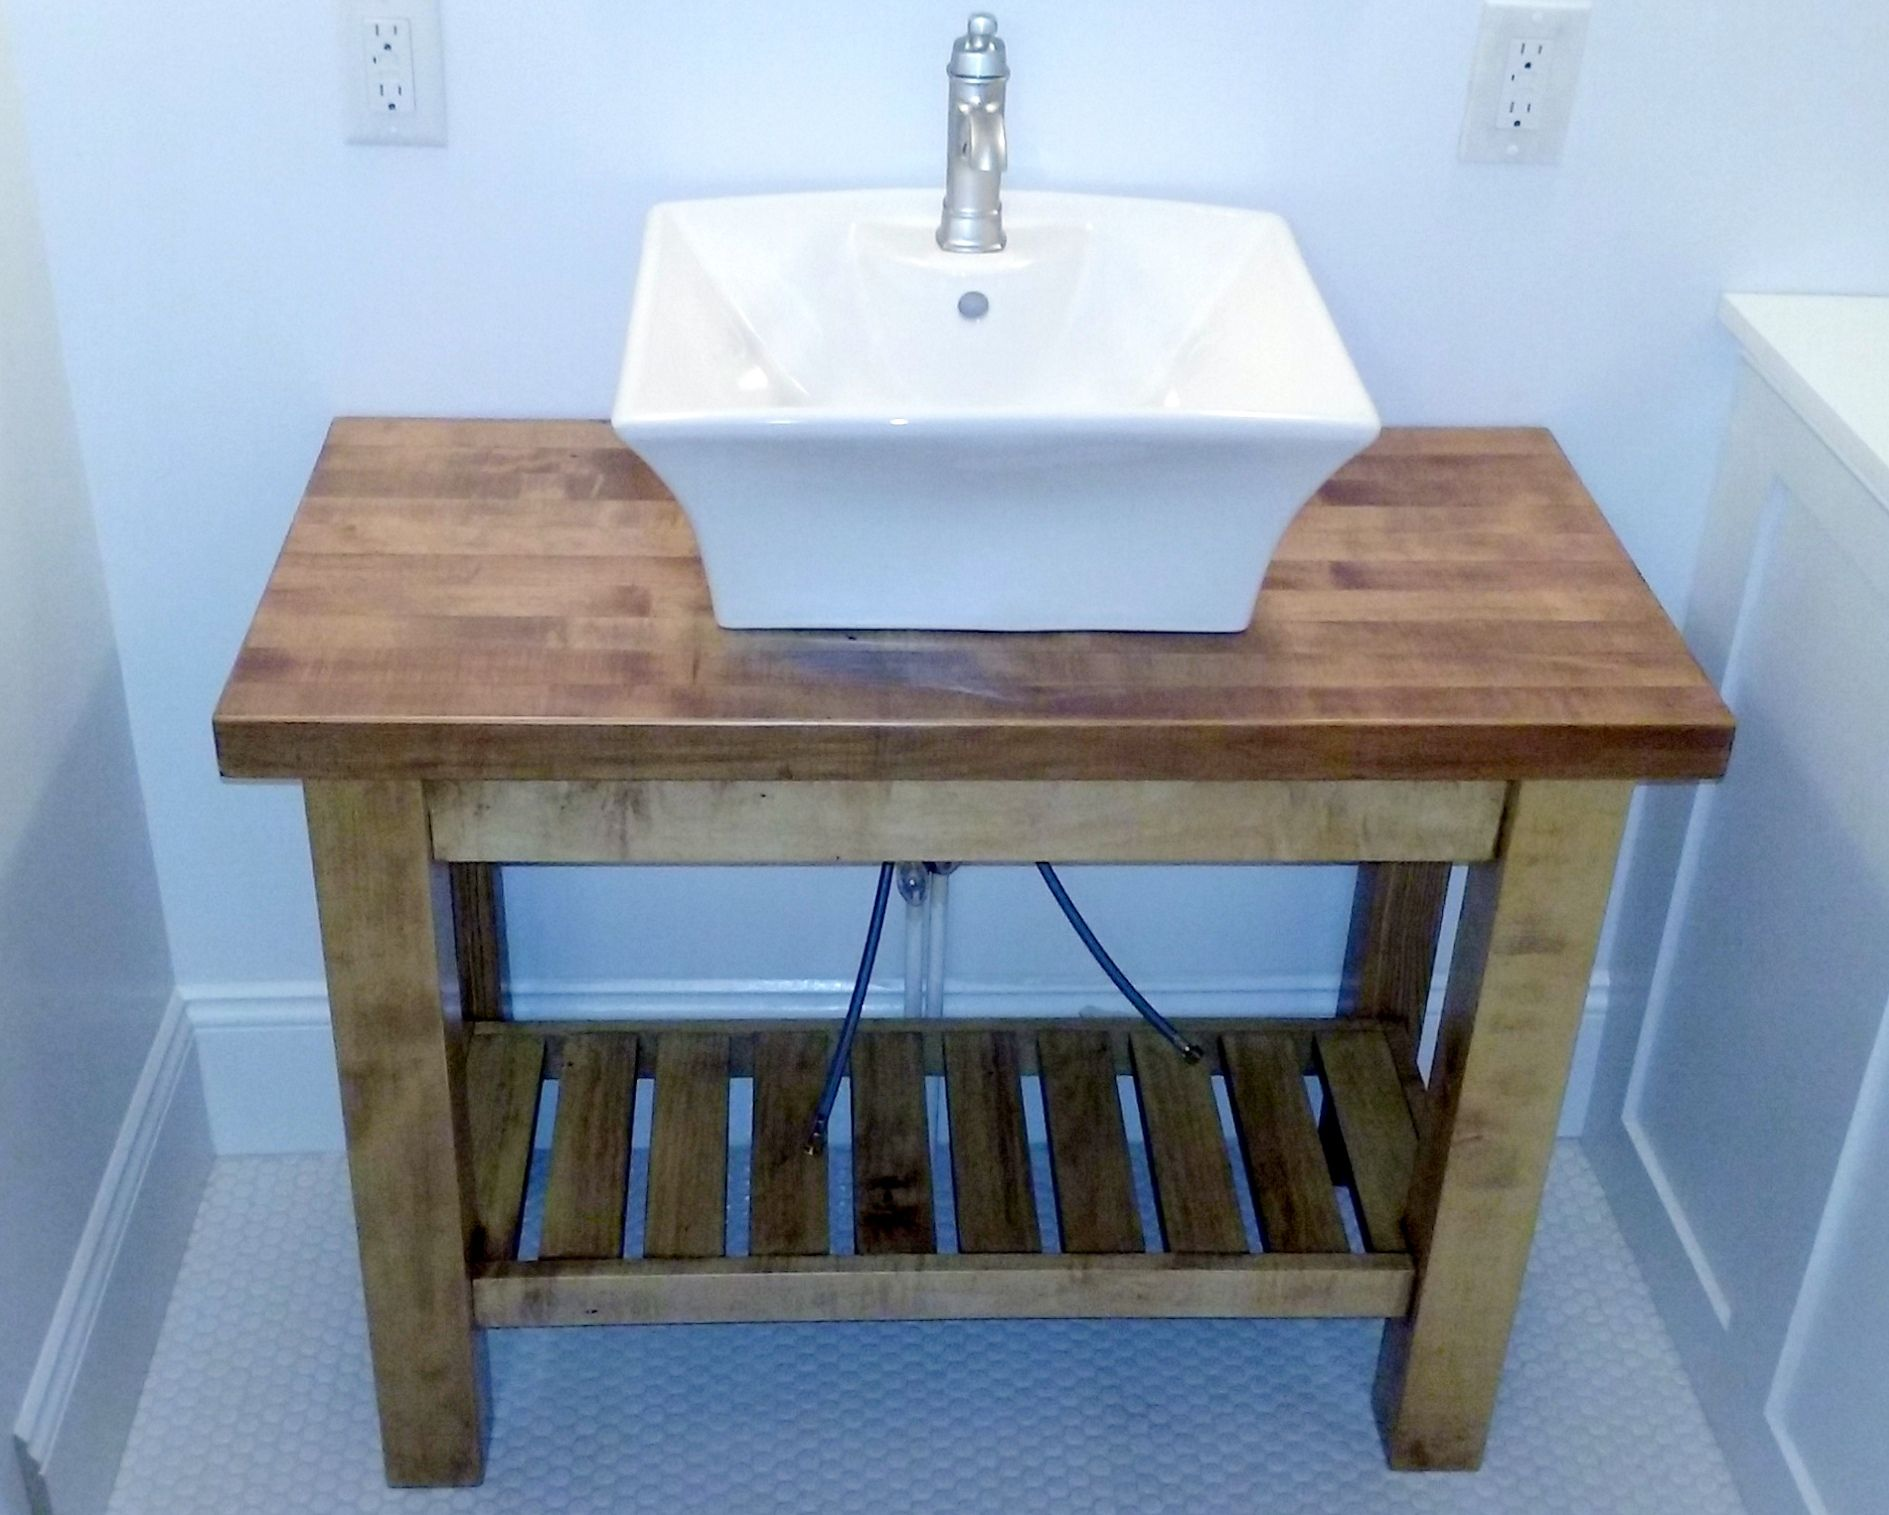 Bathroom vanity base with butcher block top. | bathroom | Pinterest ...